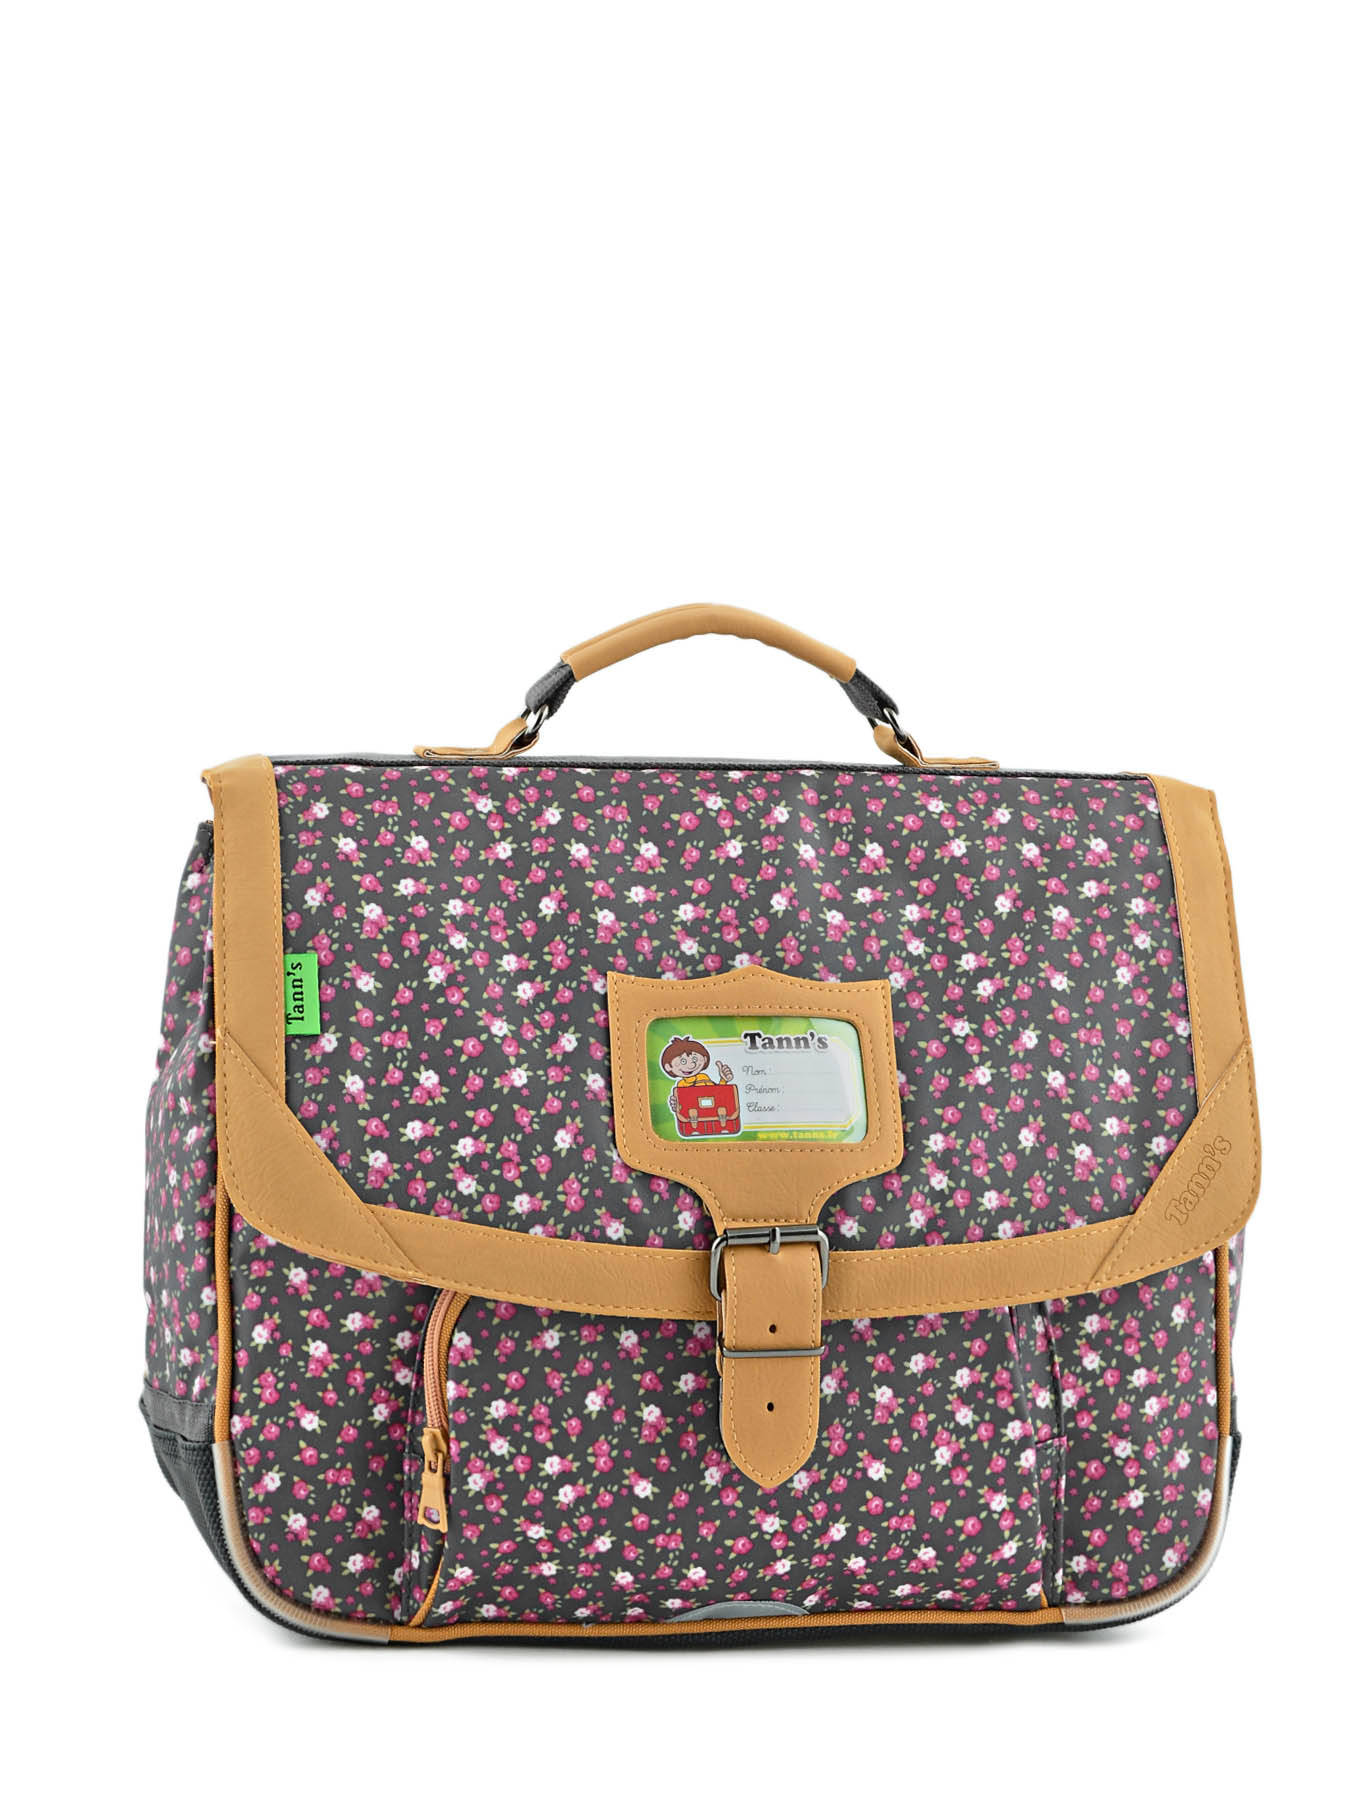 cartable cp tann's